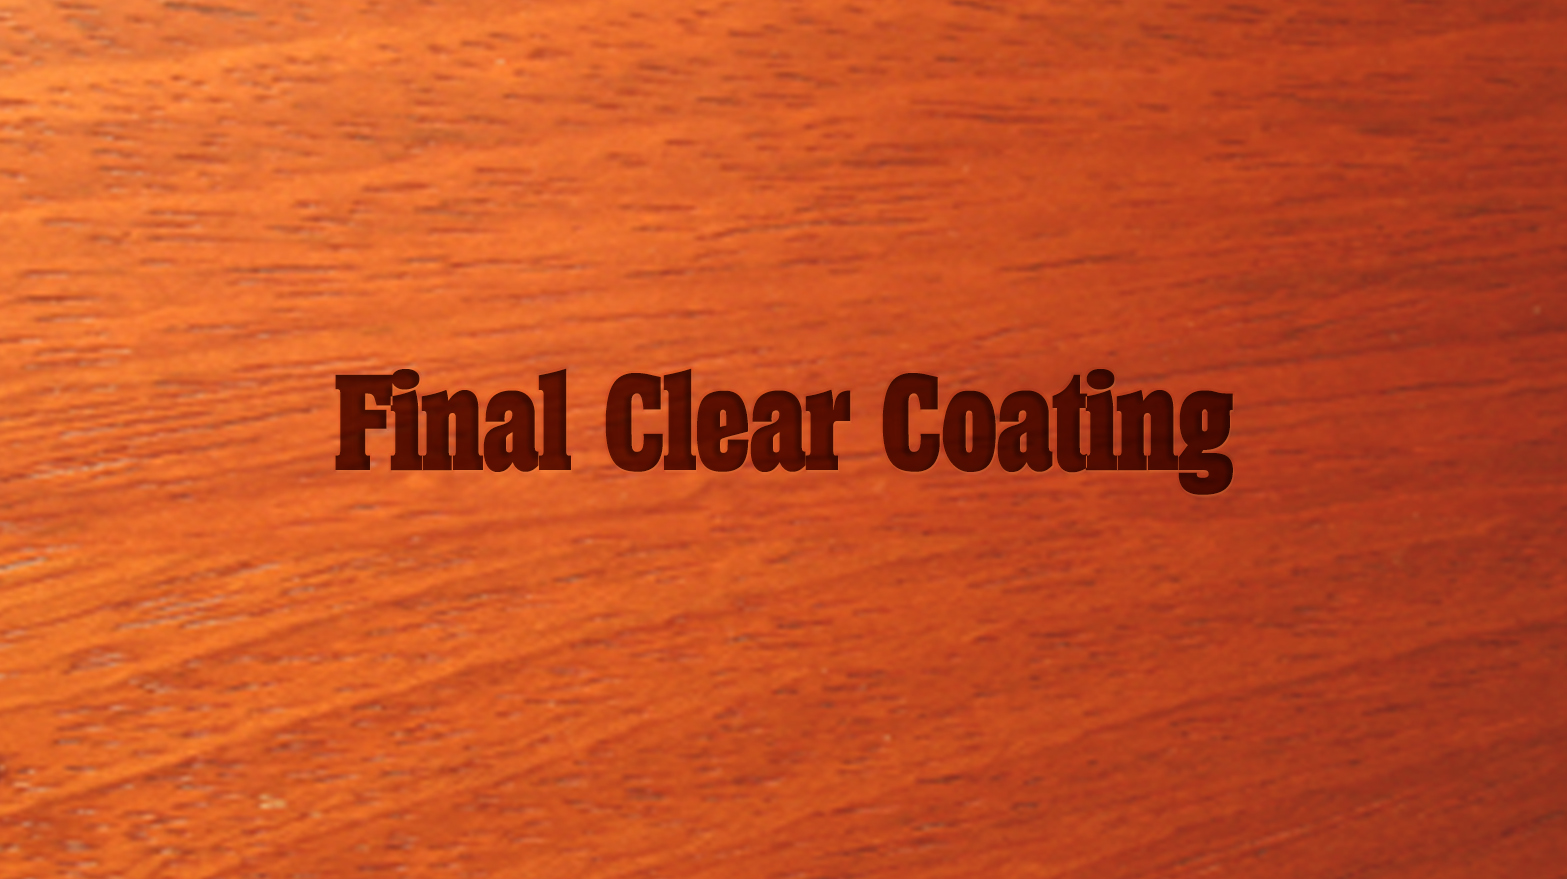 5 Day Intensive: Final Clear Coating